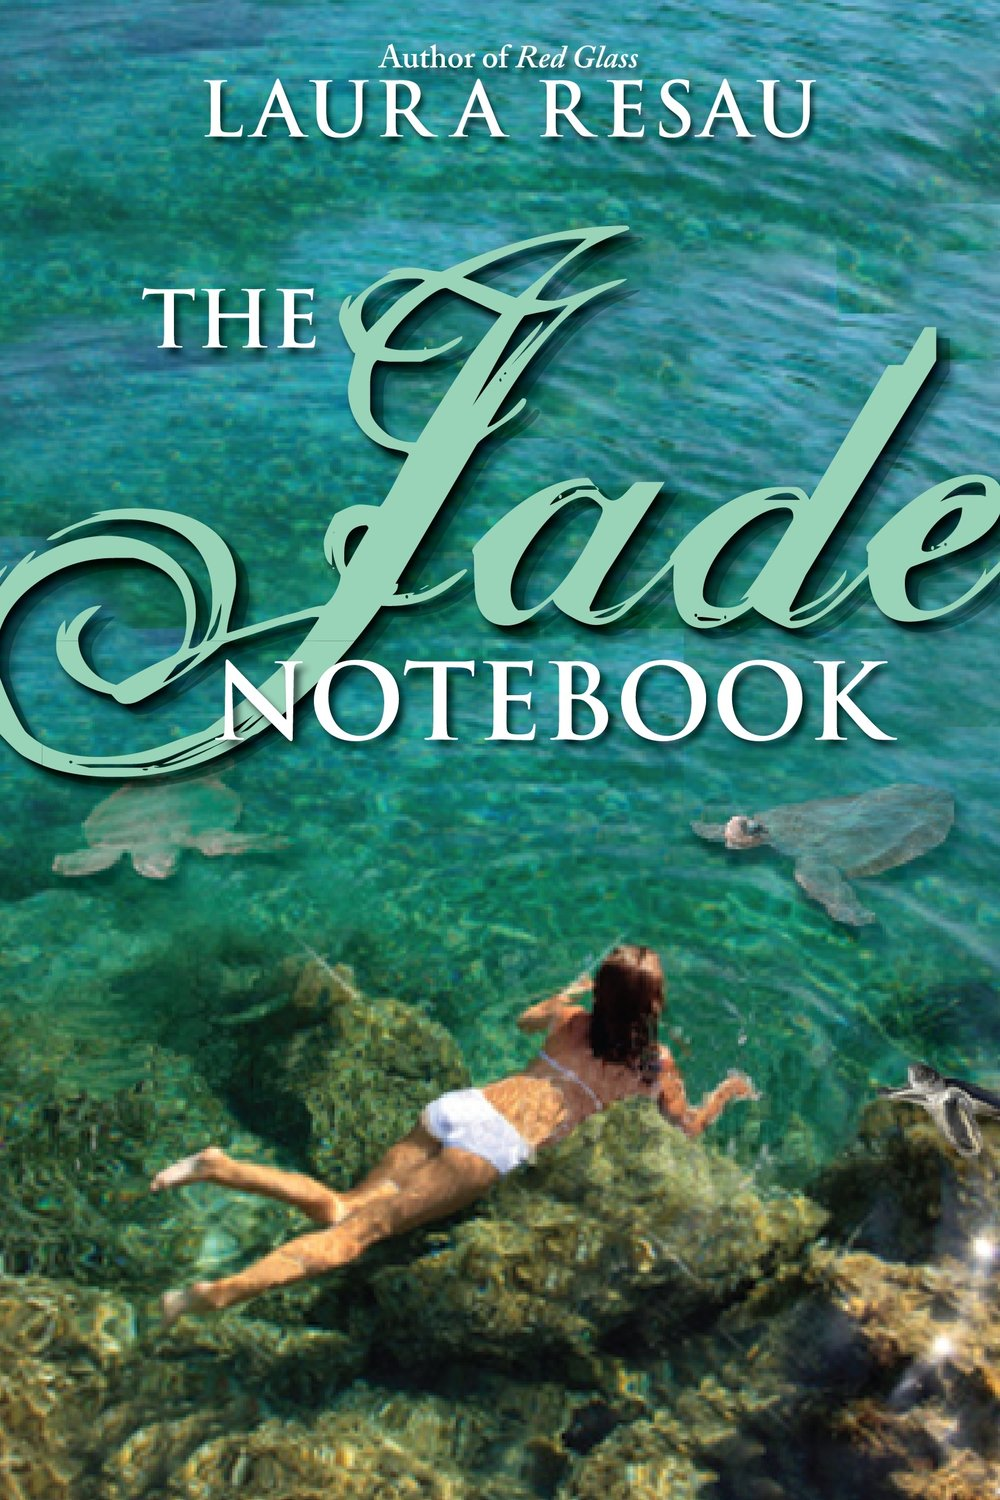 The_Jade_Notebook_cover_high_res.JPG